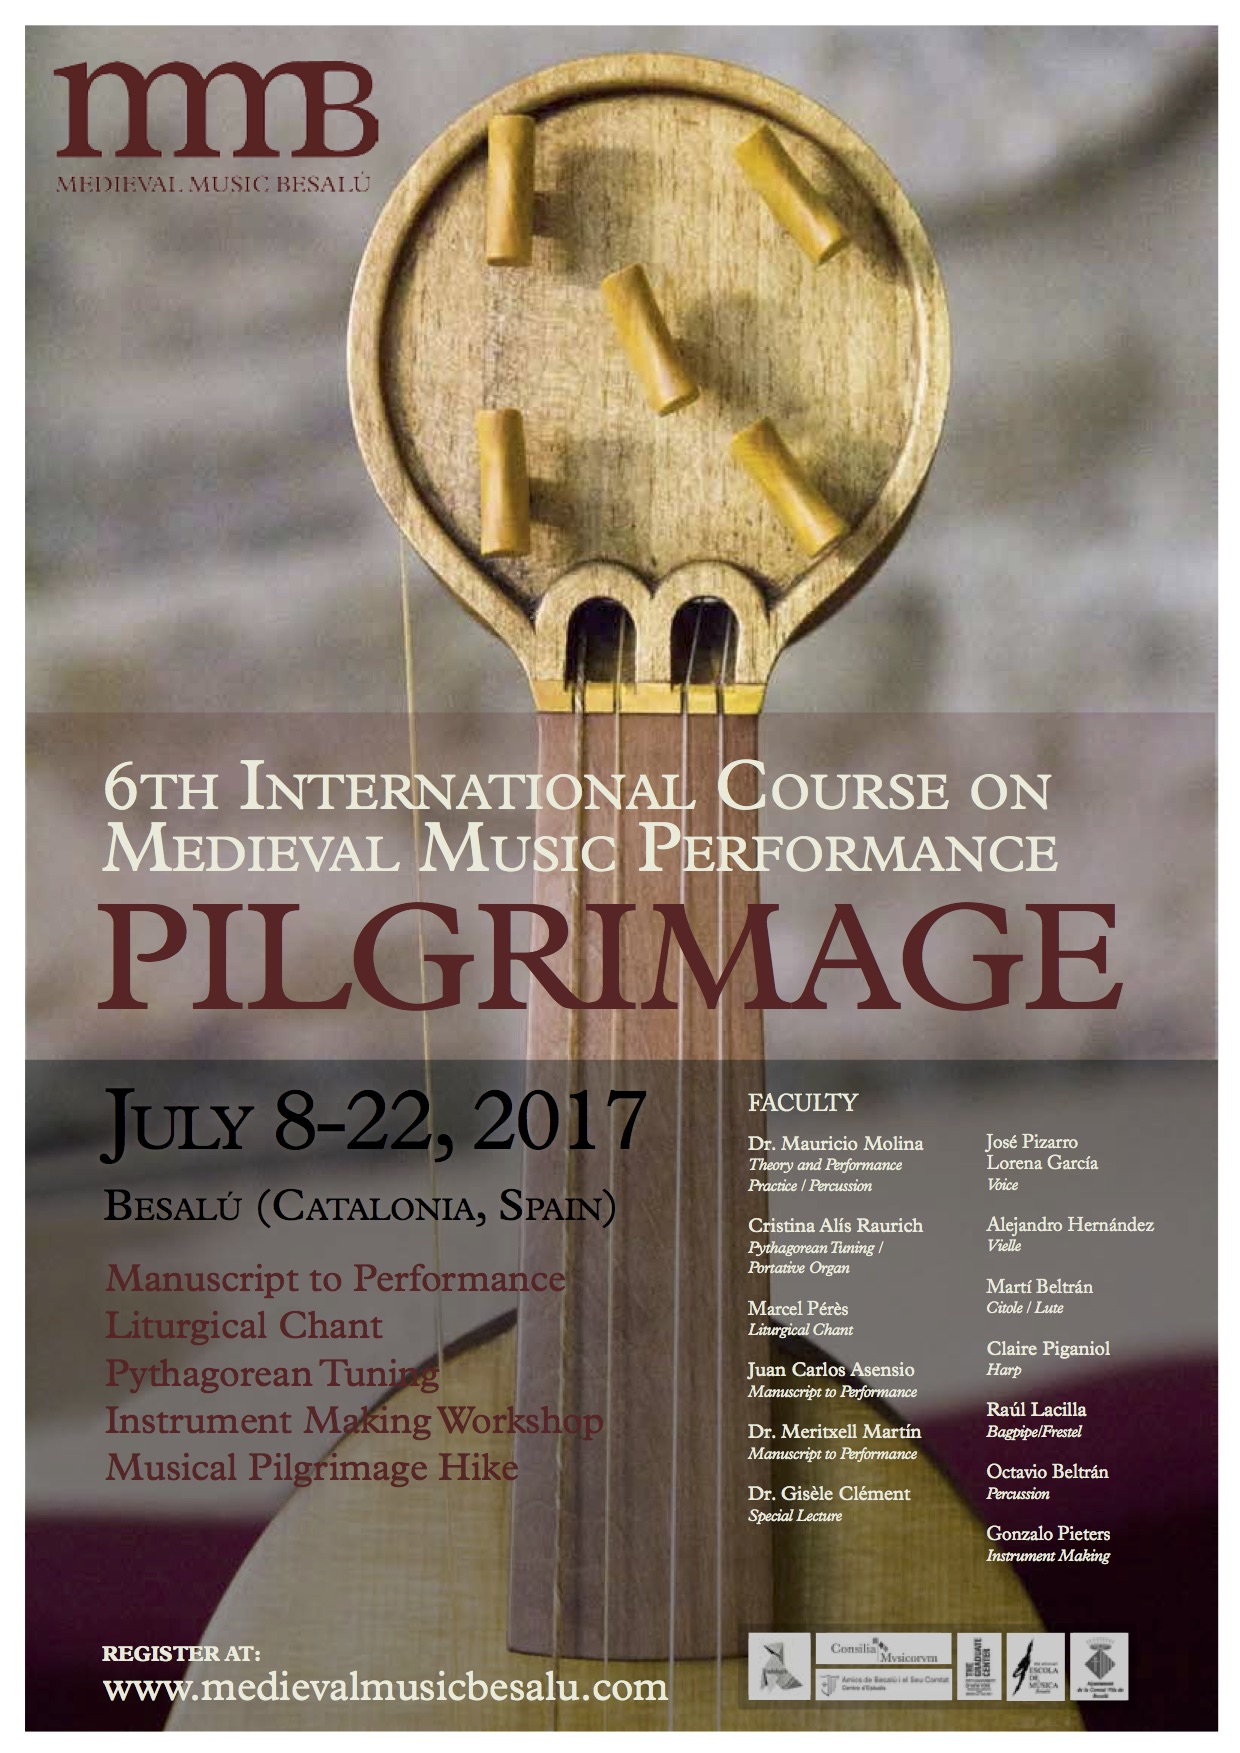 besalu-medieval-music-course-2017-poster-A4-03-email còpia